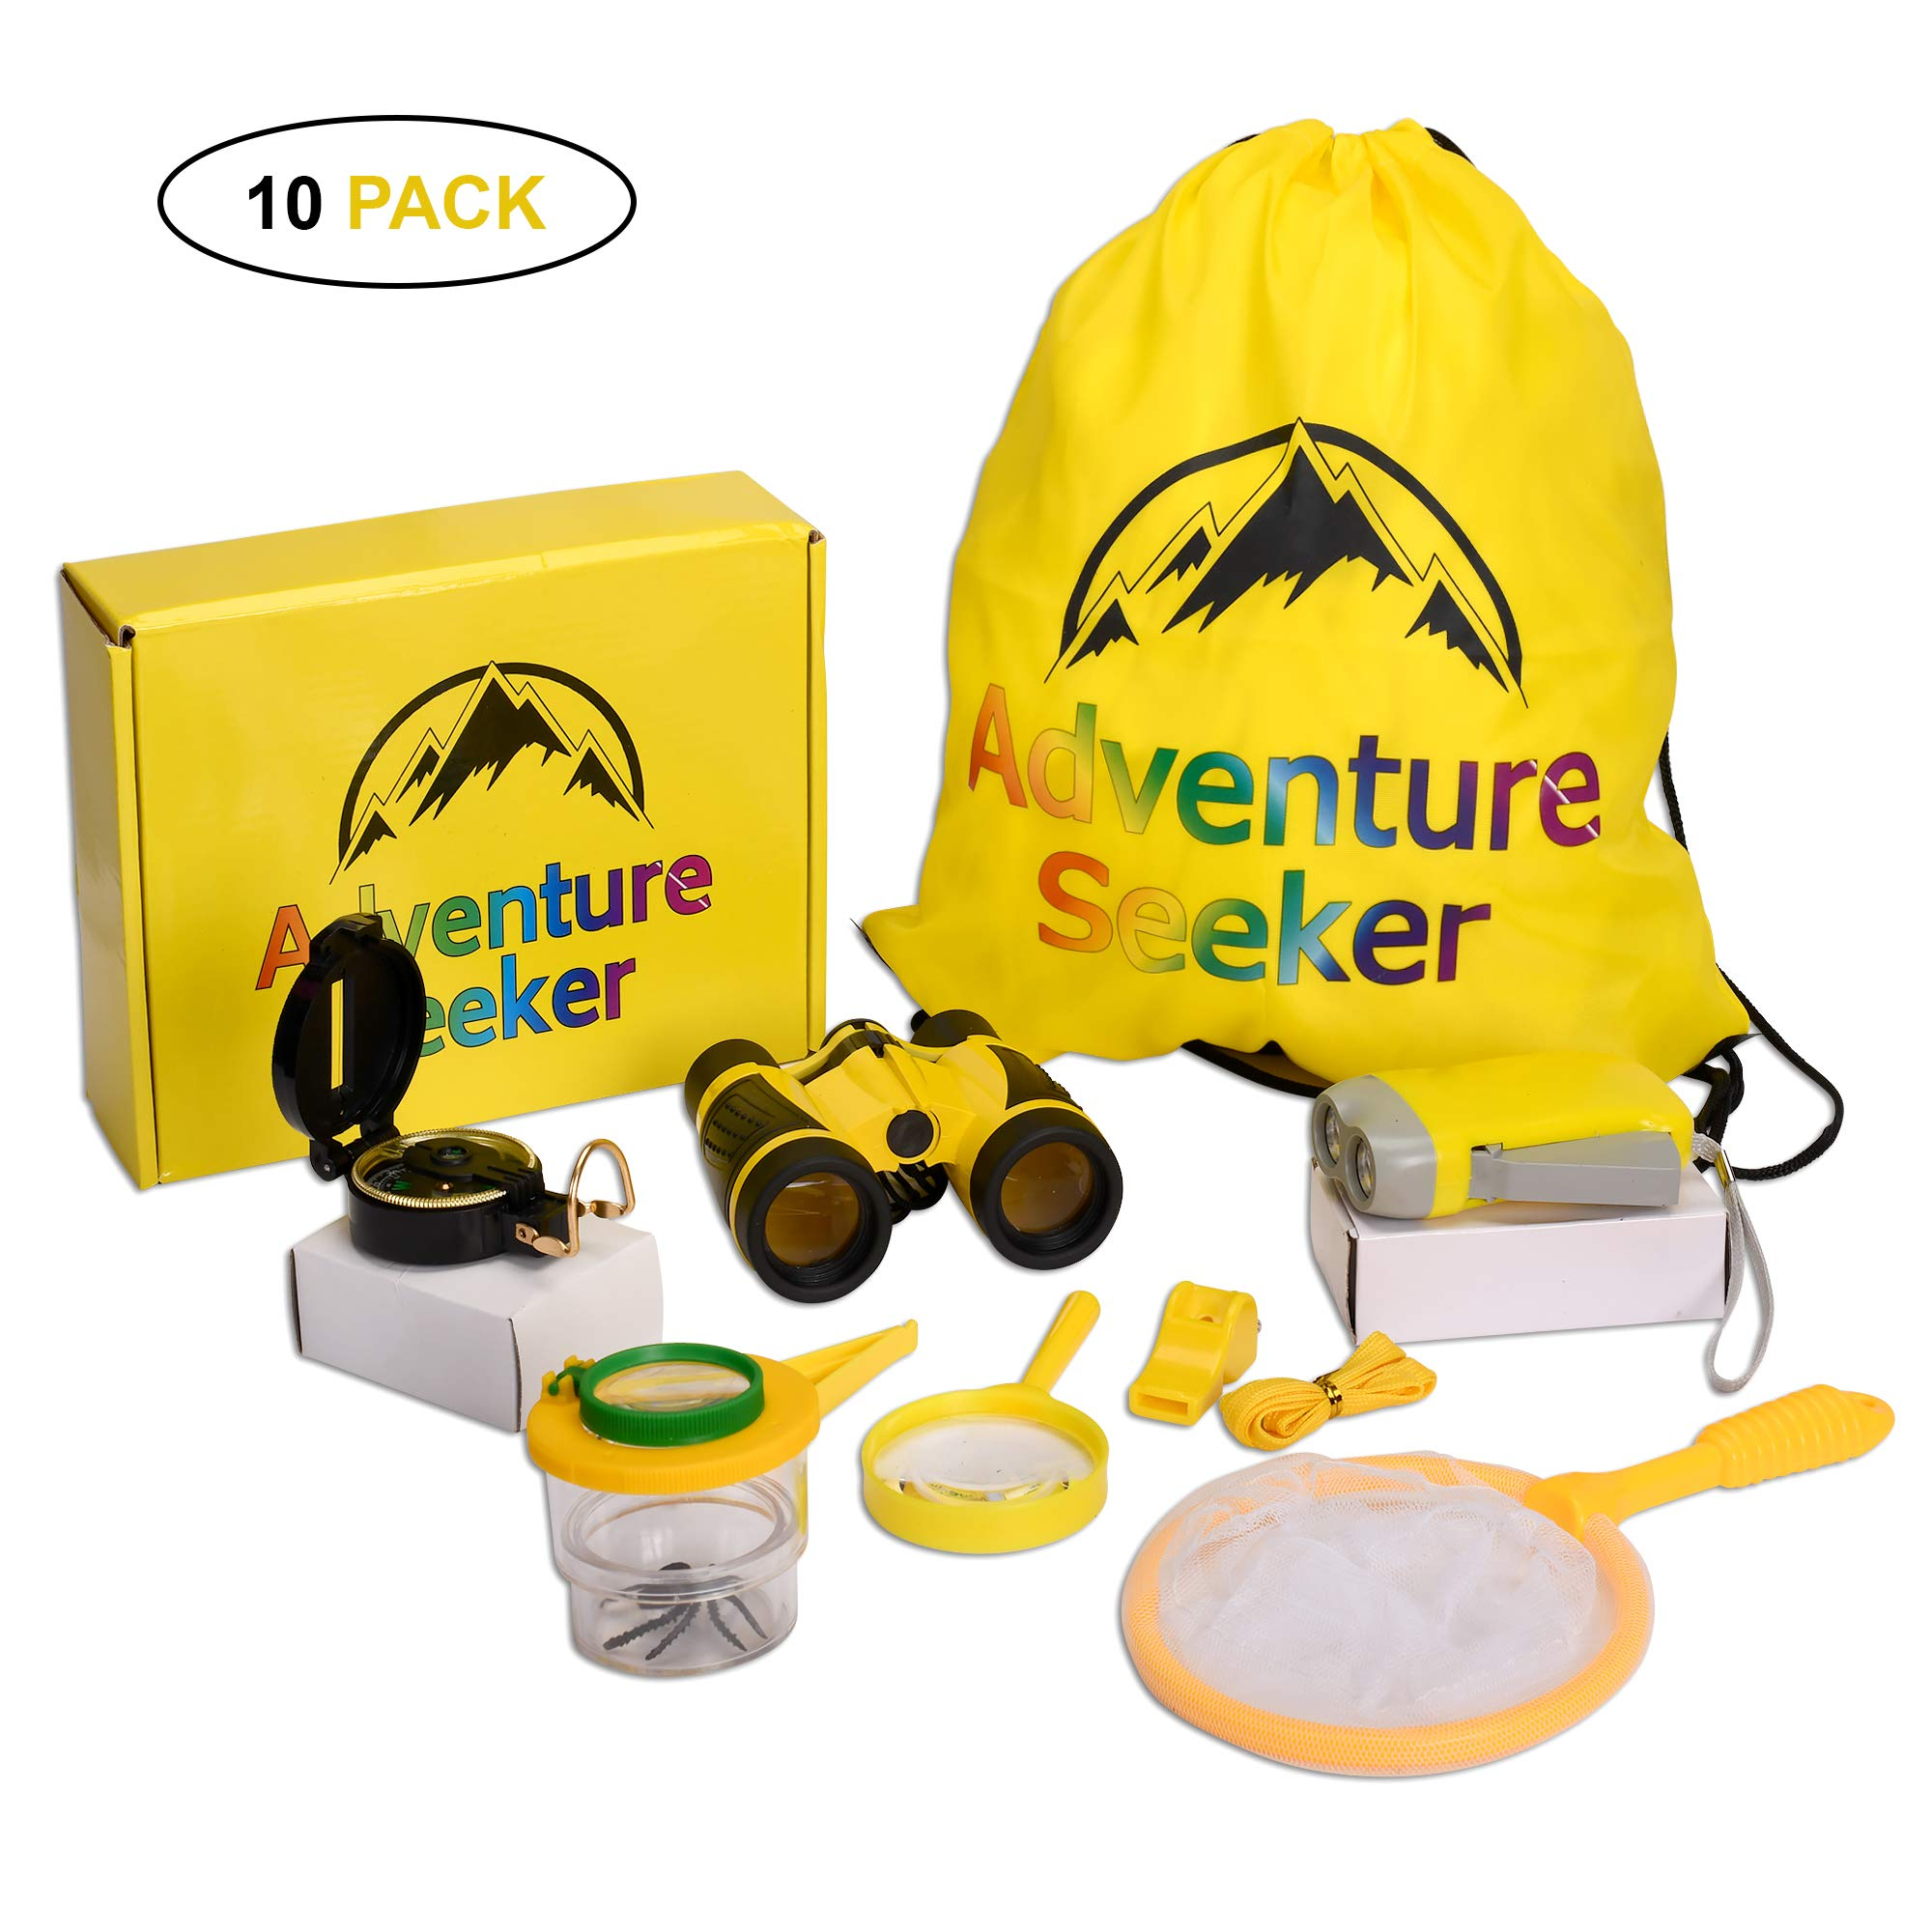 Adventure Kit for kids-Outdoor Exploration Kit-Toys Girls & Boys-Educational Toys Binoculars, Flashlight, Compass, Magnifying Glass, Butterfly Net, Whistle, Bug Collector, Pincers, Spider Toy & Bag